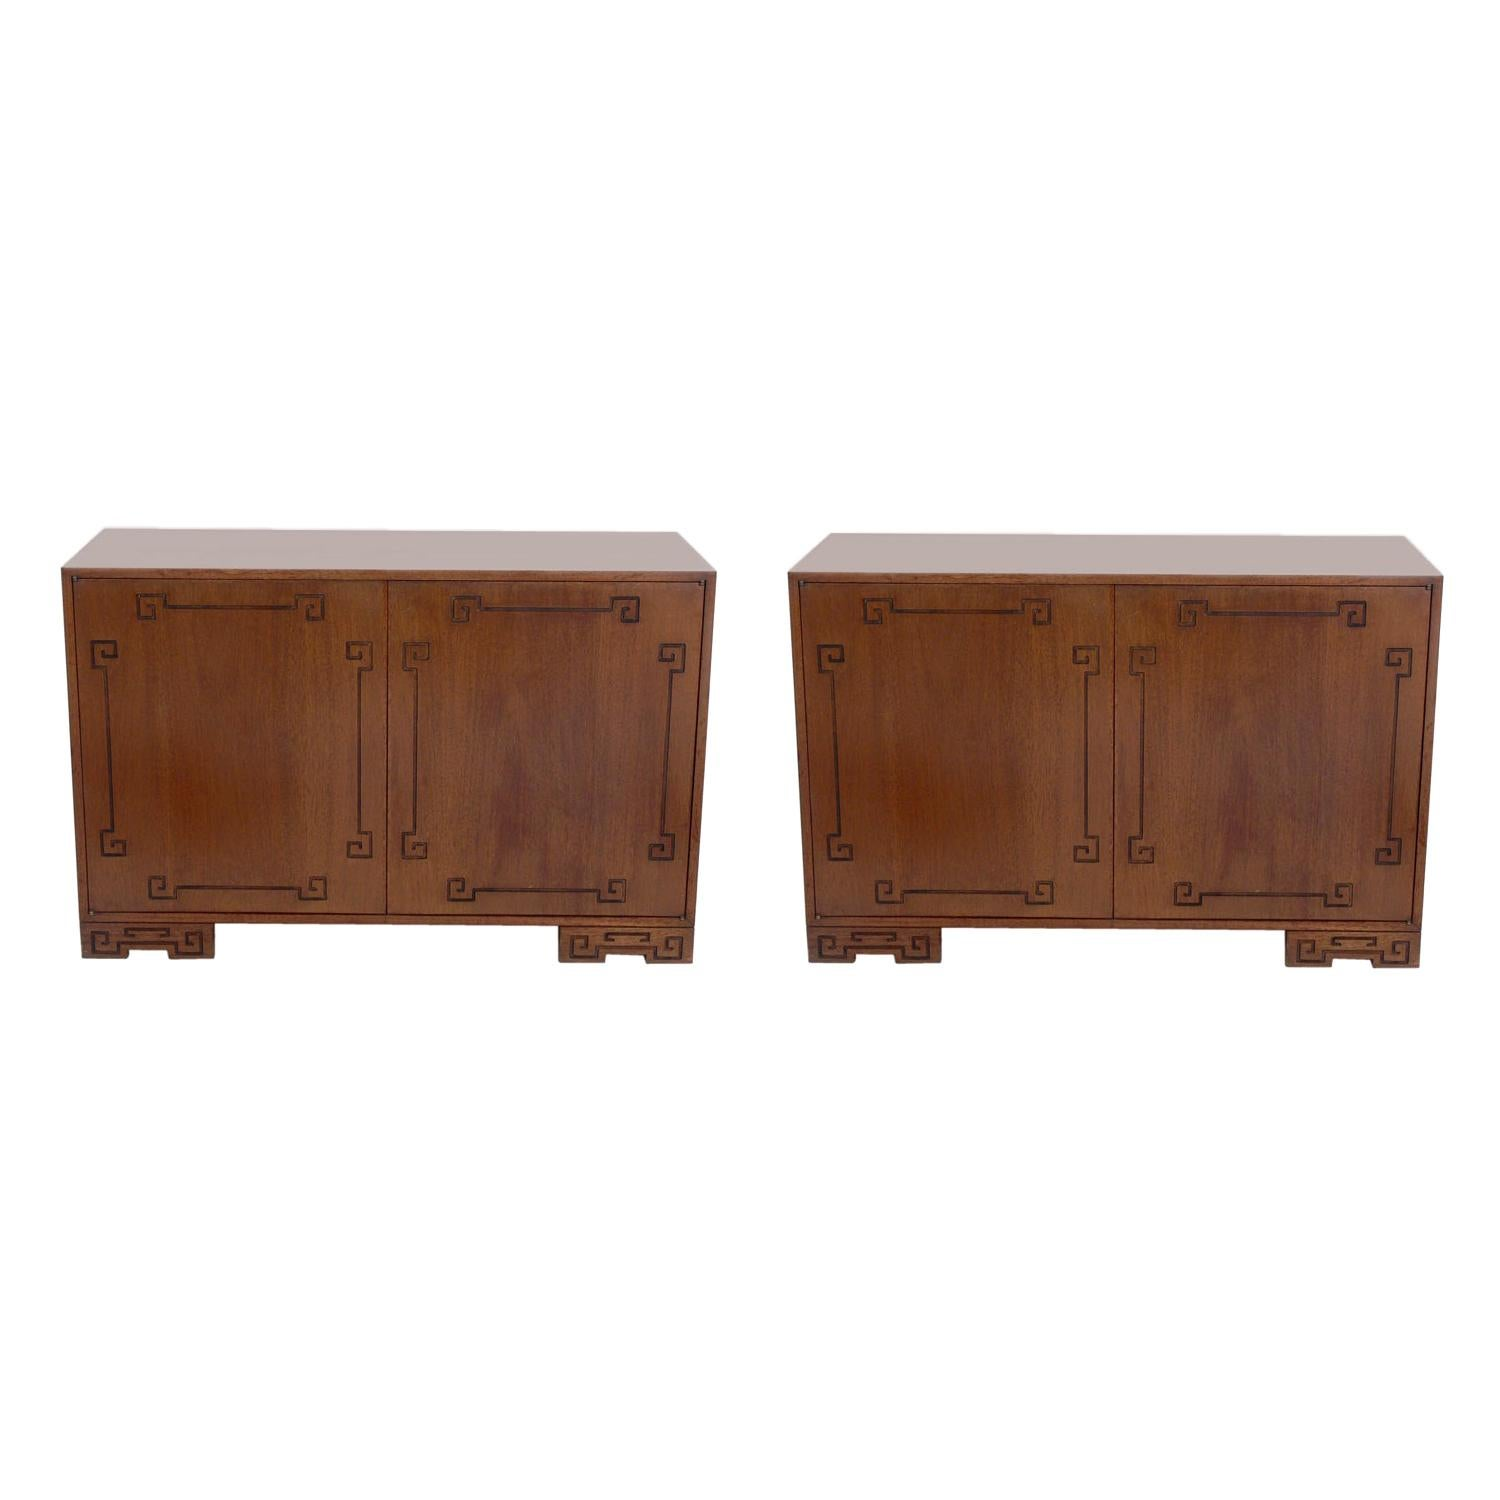 Pair of Asian Influenced Cabinets in Your Choice of Color